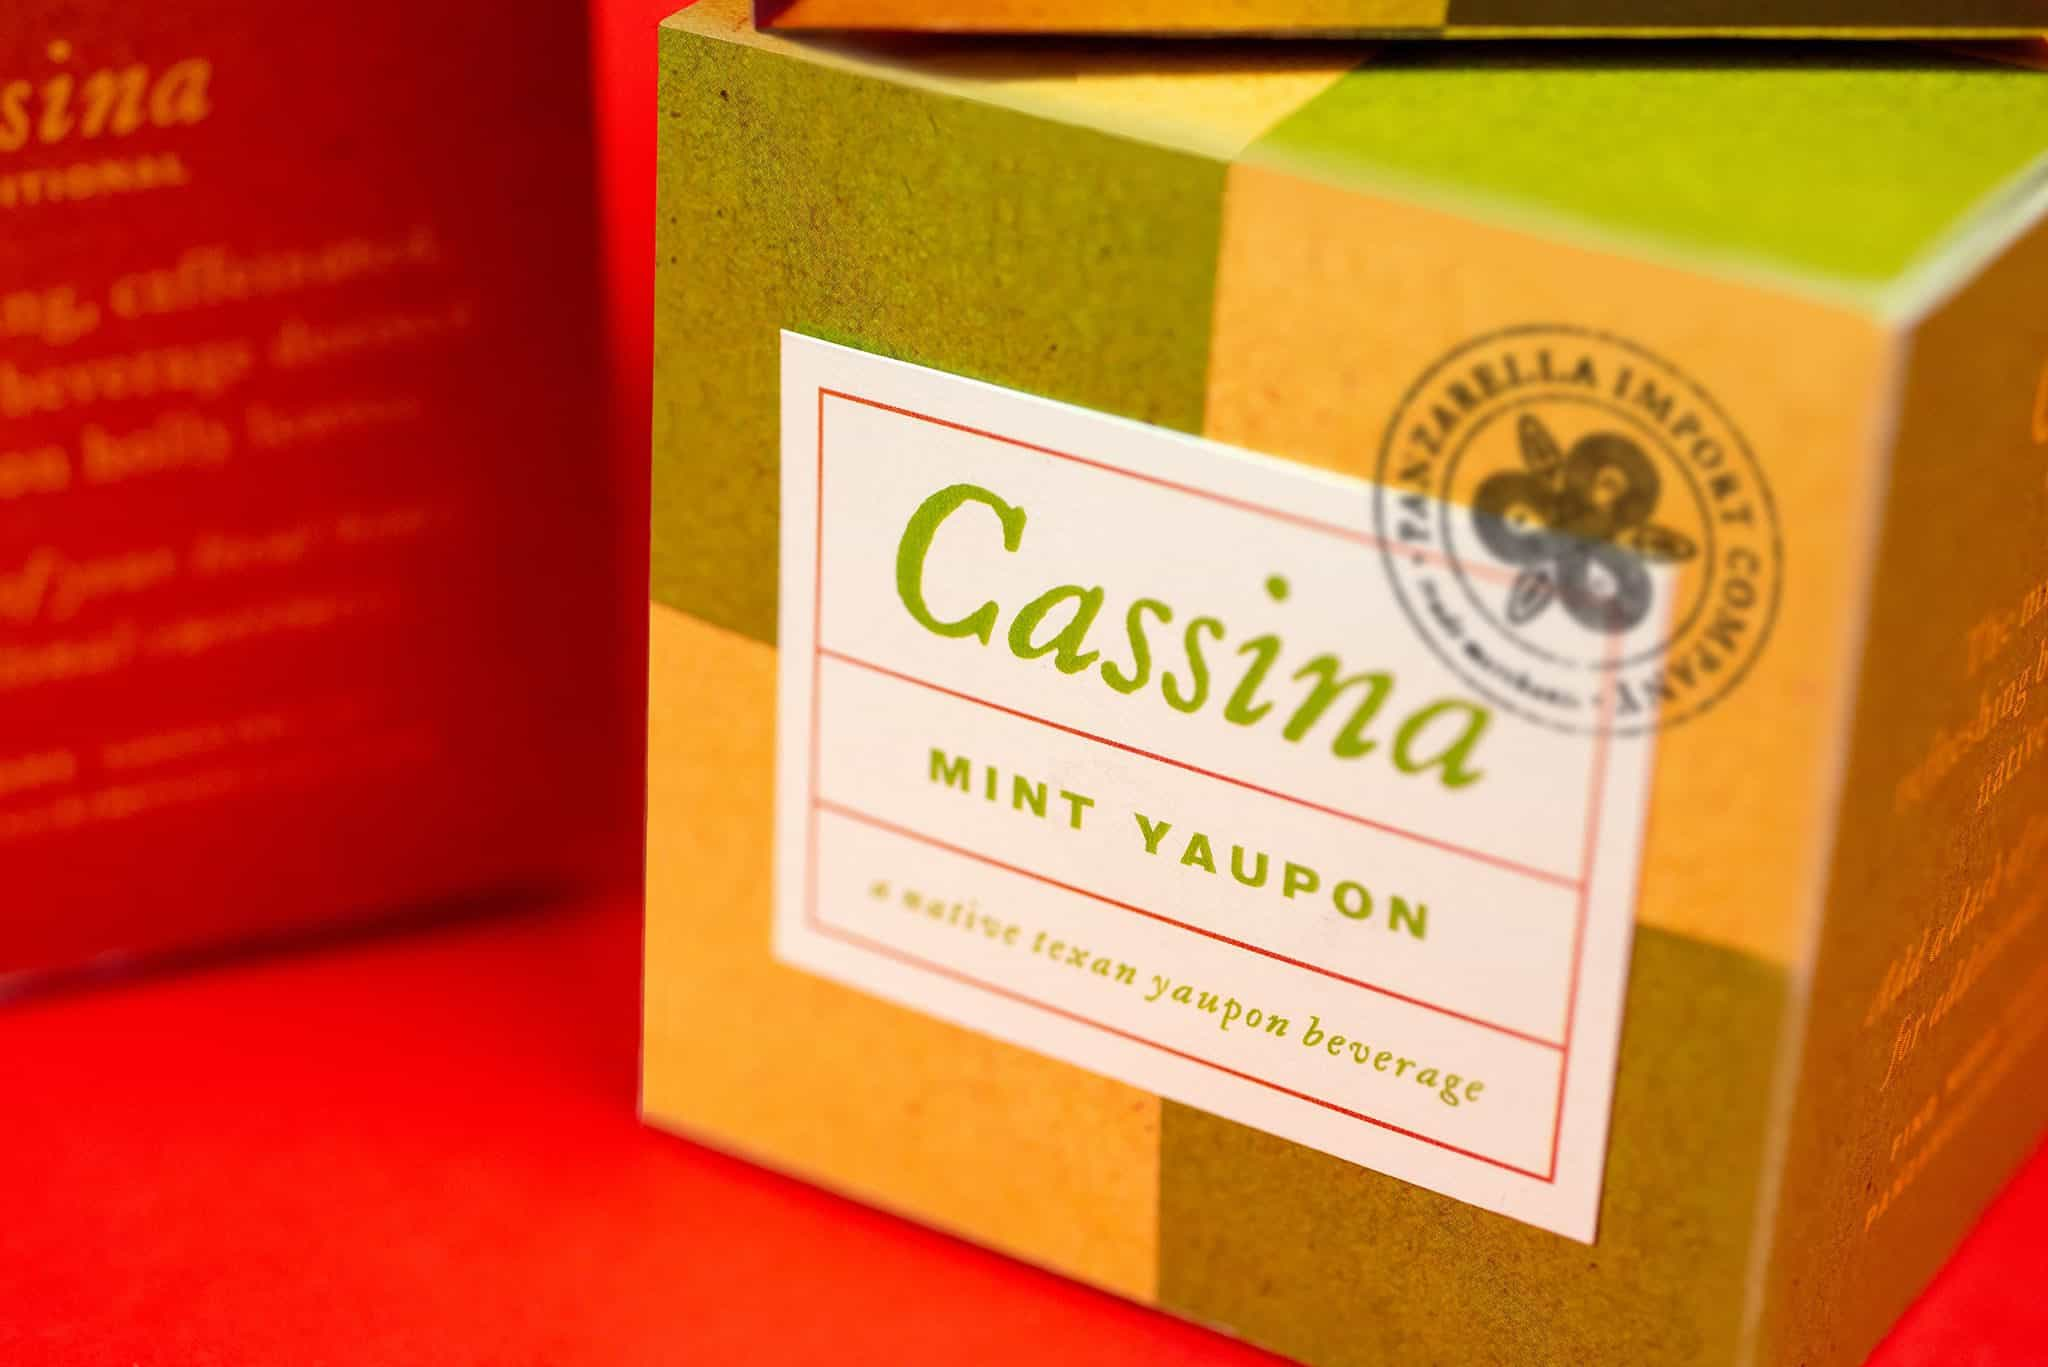 Yaupon tea packaging box detail for Panzarella Import Company | Designed by Field of Study: A branding and graphic design consultancy | Houston TX | Jennifer Blanco & John Earles